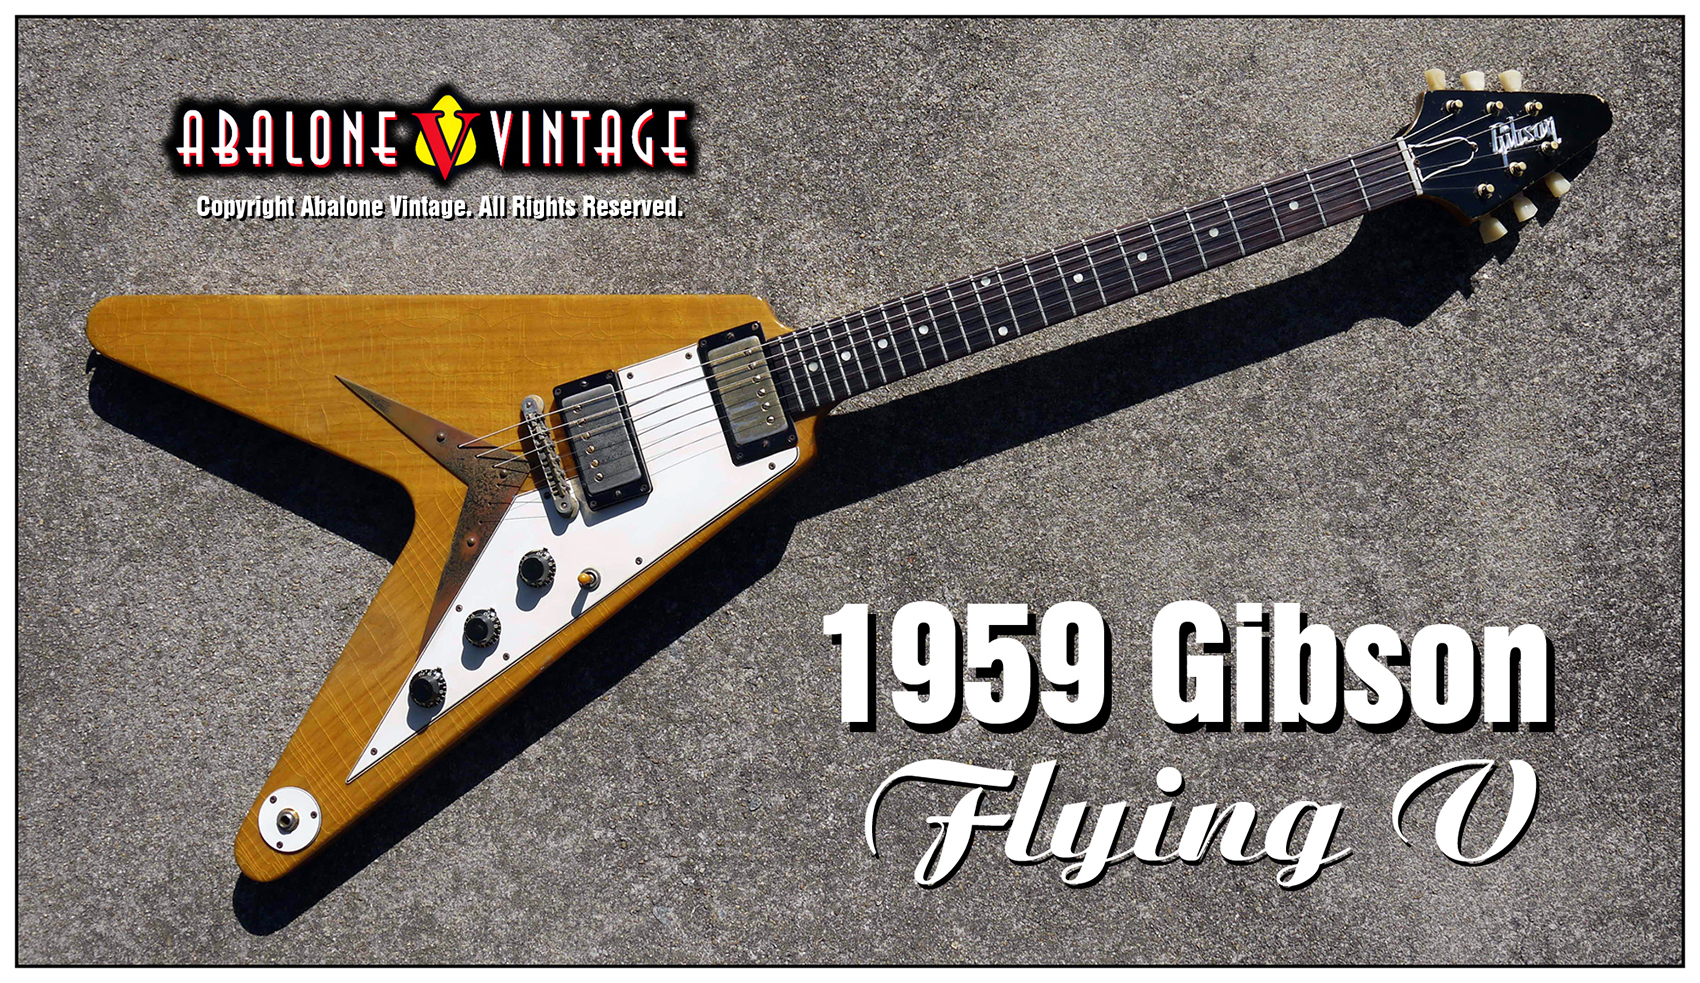 1959 Gibson Flying V guitar. Korina futuristic guitars. Explorer.